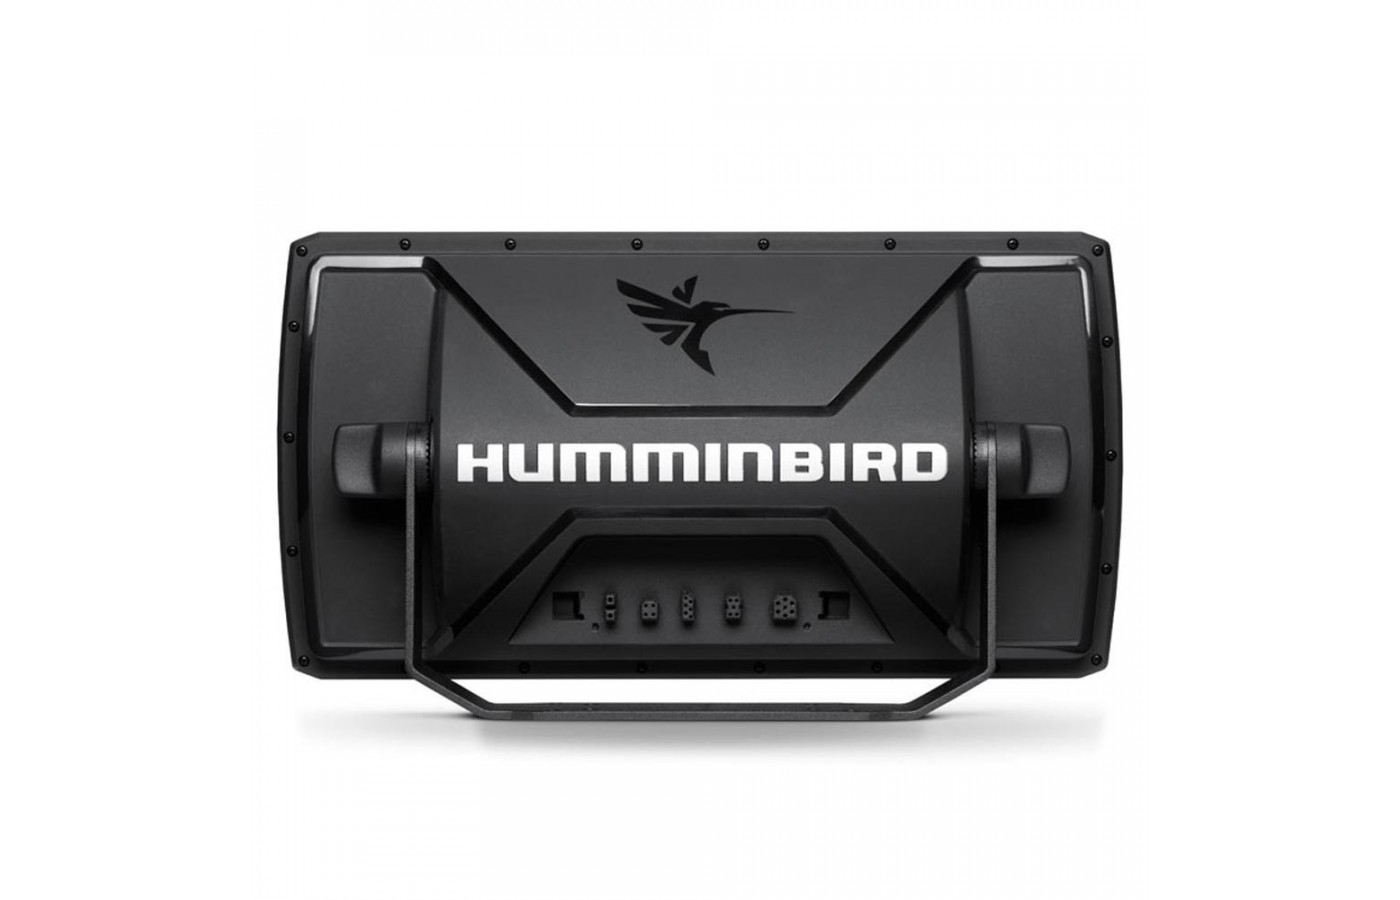 Humminbird HELIX 9 comes with it's mount and other accessories.